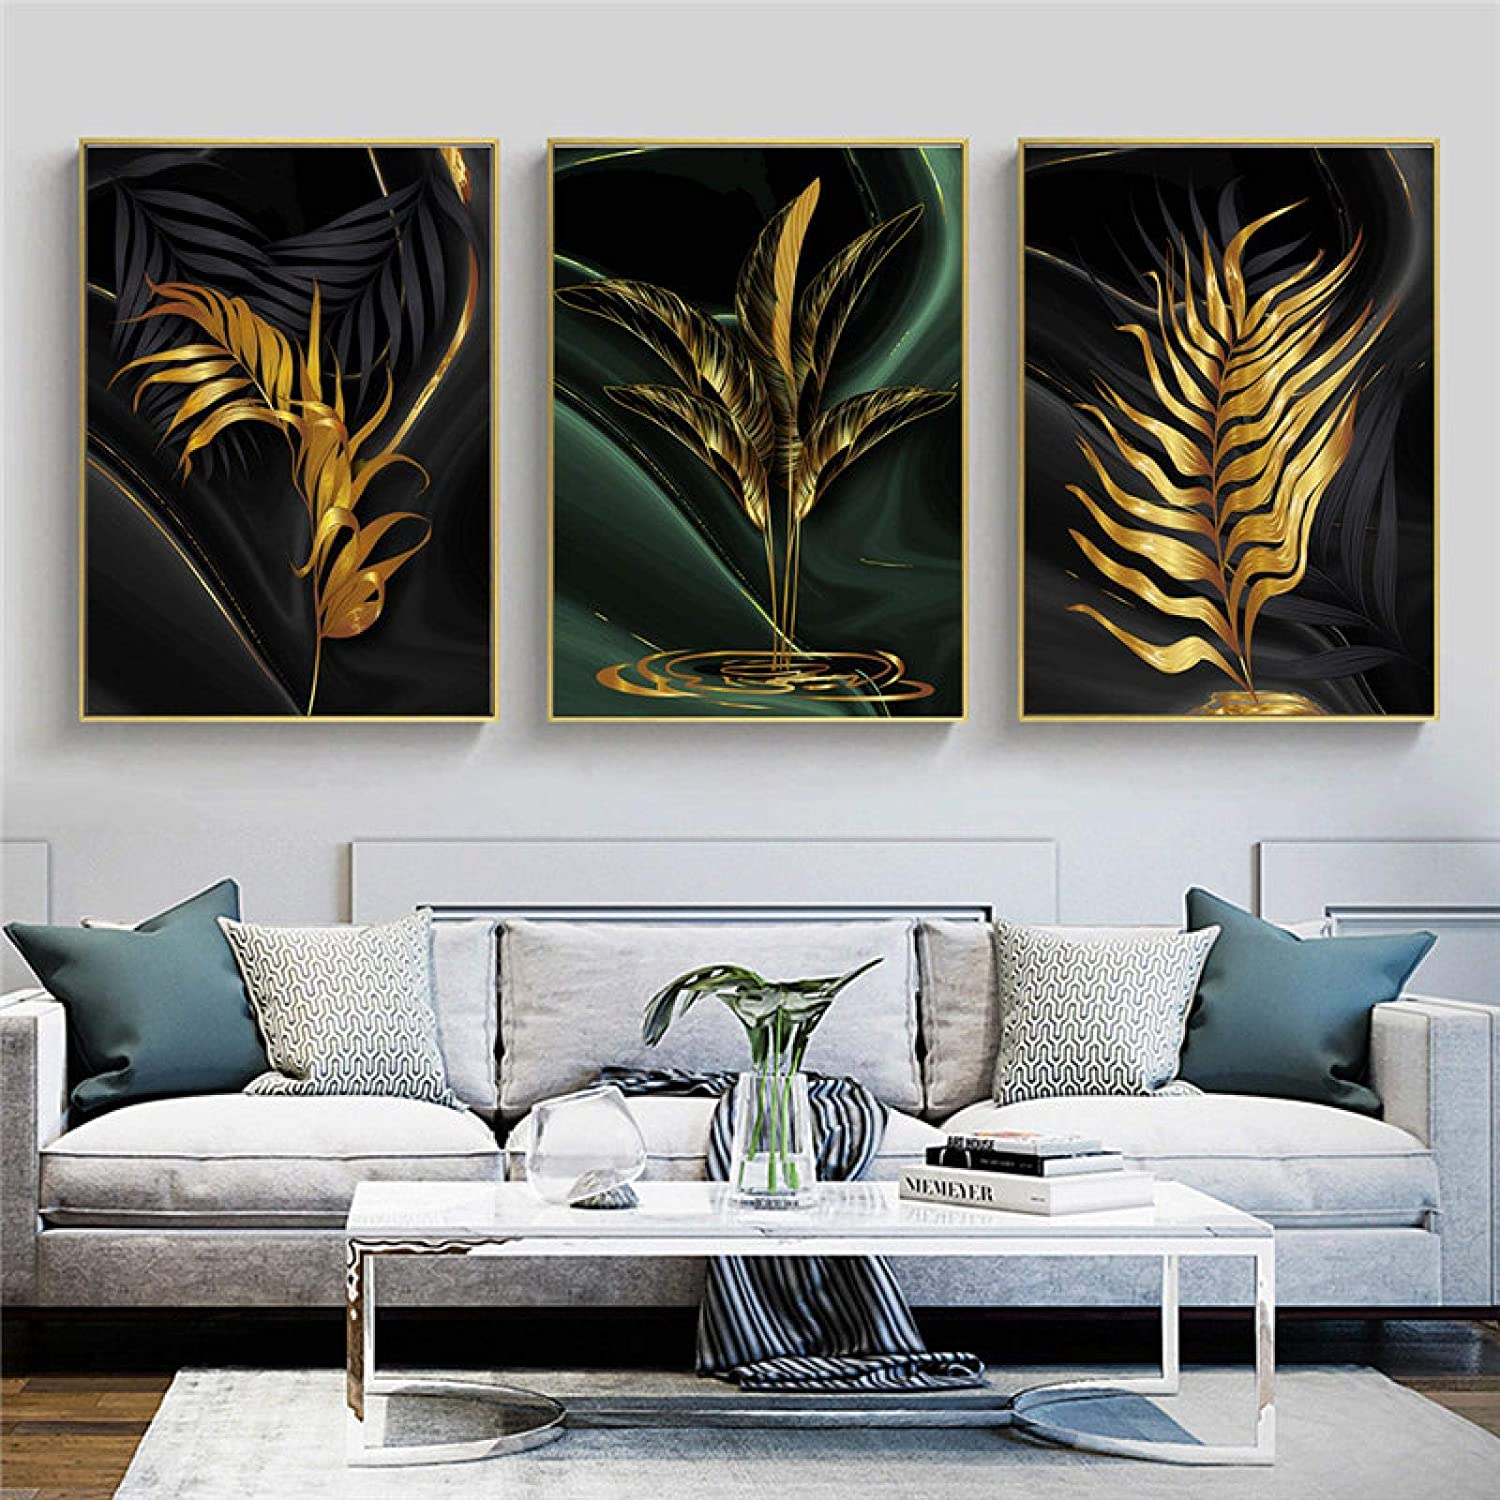 Canvas Art Print Max 51% OFF Spring new work one after another Wall Gold and Ca Leaves Style Fashion Green